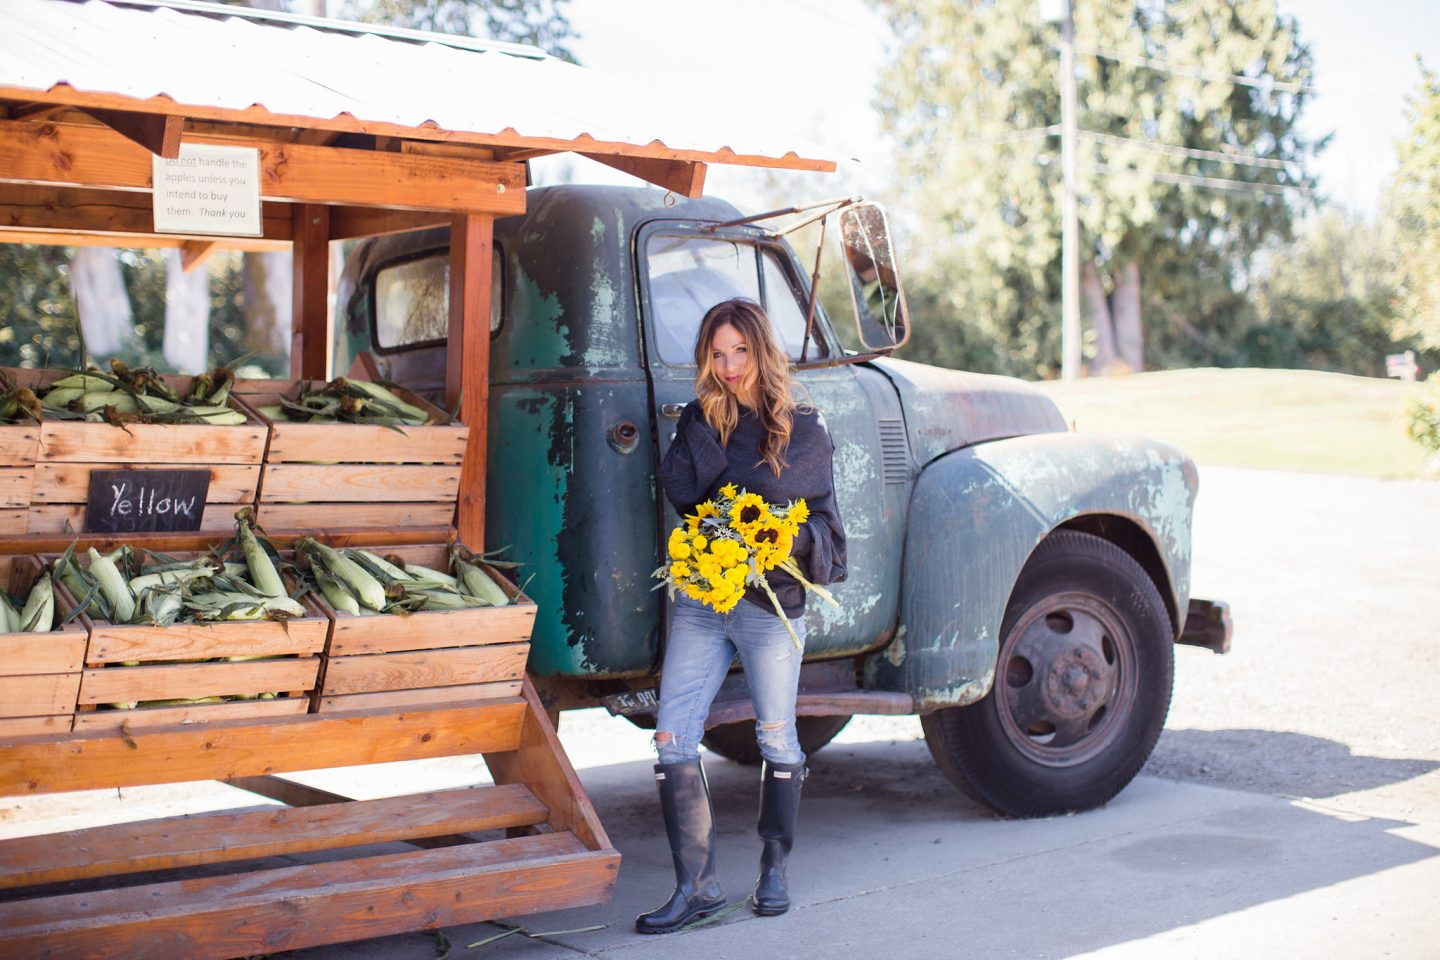 Leslie of Lemon Grove Lane with farm truck and sunflowers.